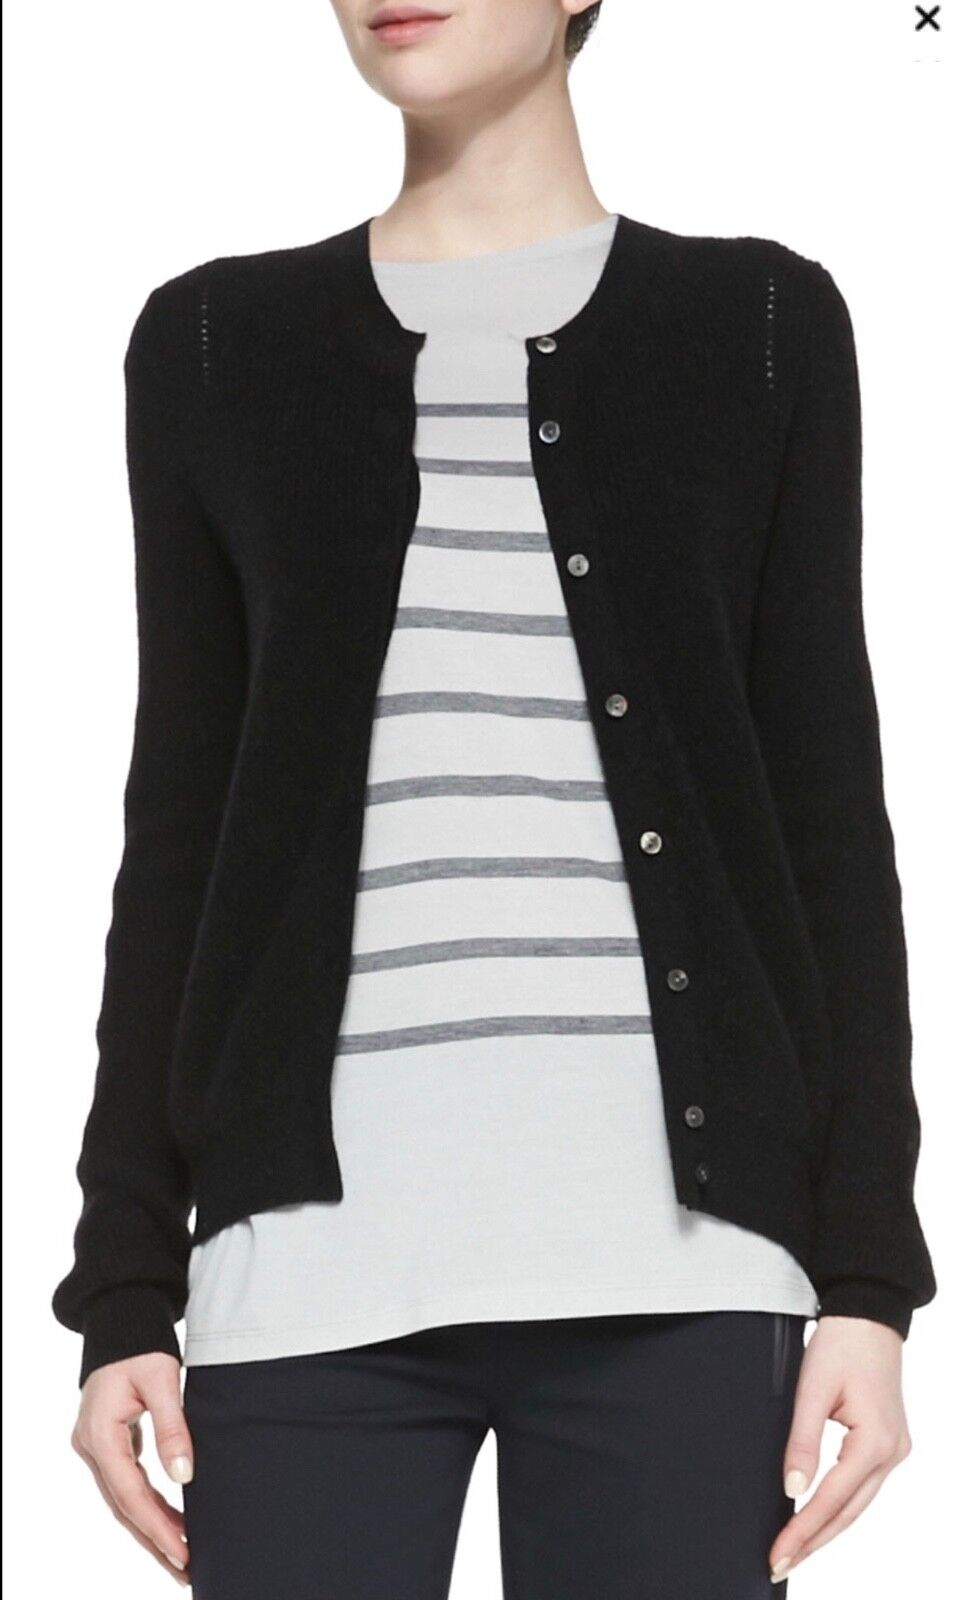 V594 NWT VINCE WOOL CASHMERE RIB BUTTON WOMEN CARDIGAN SIZE S in B  295